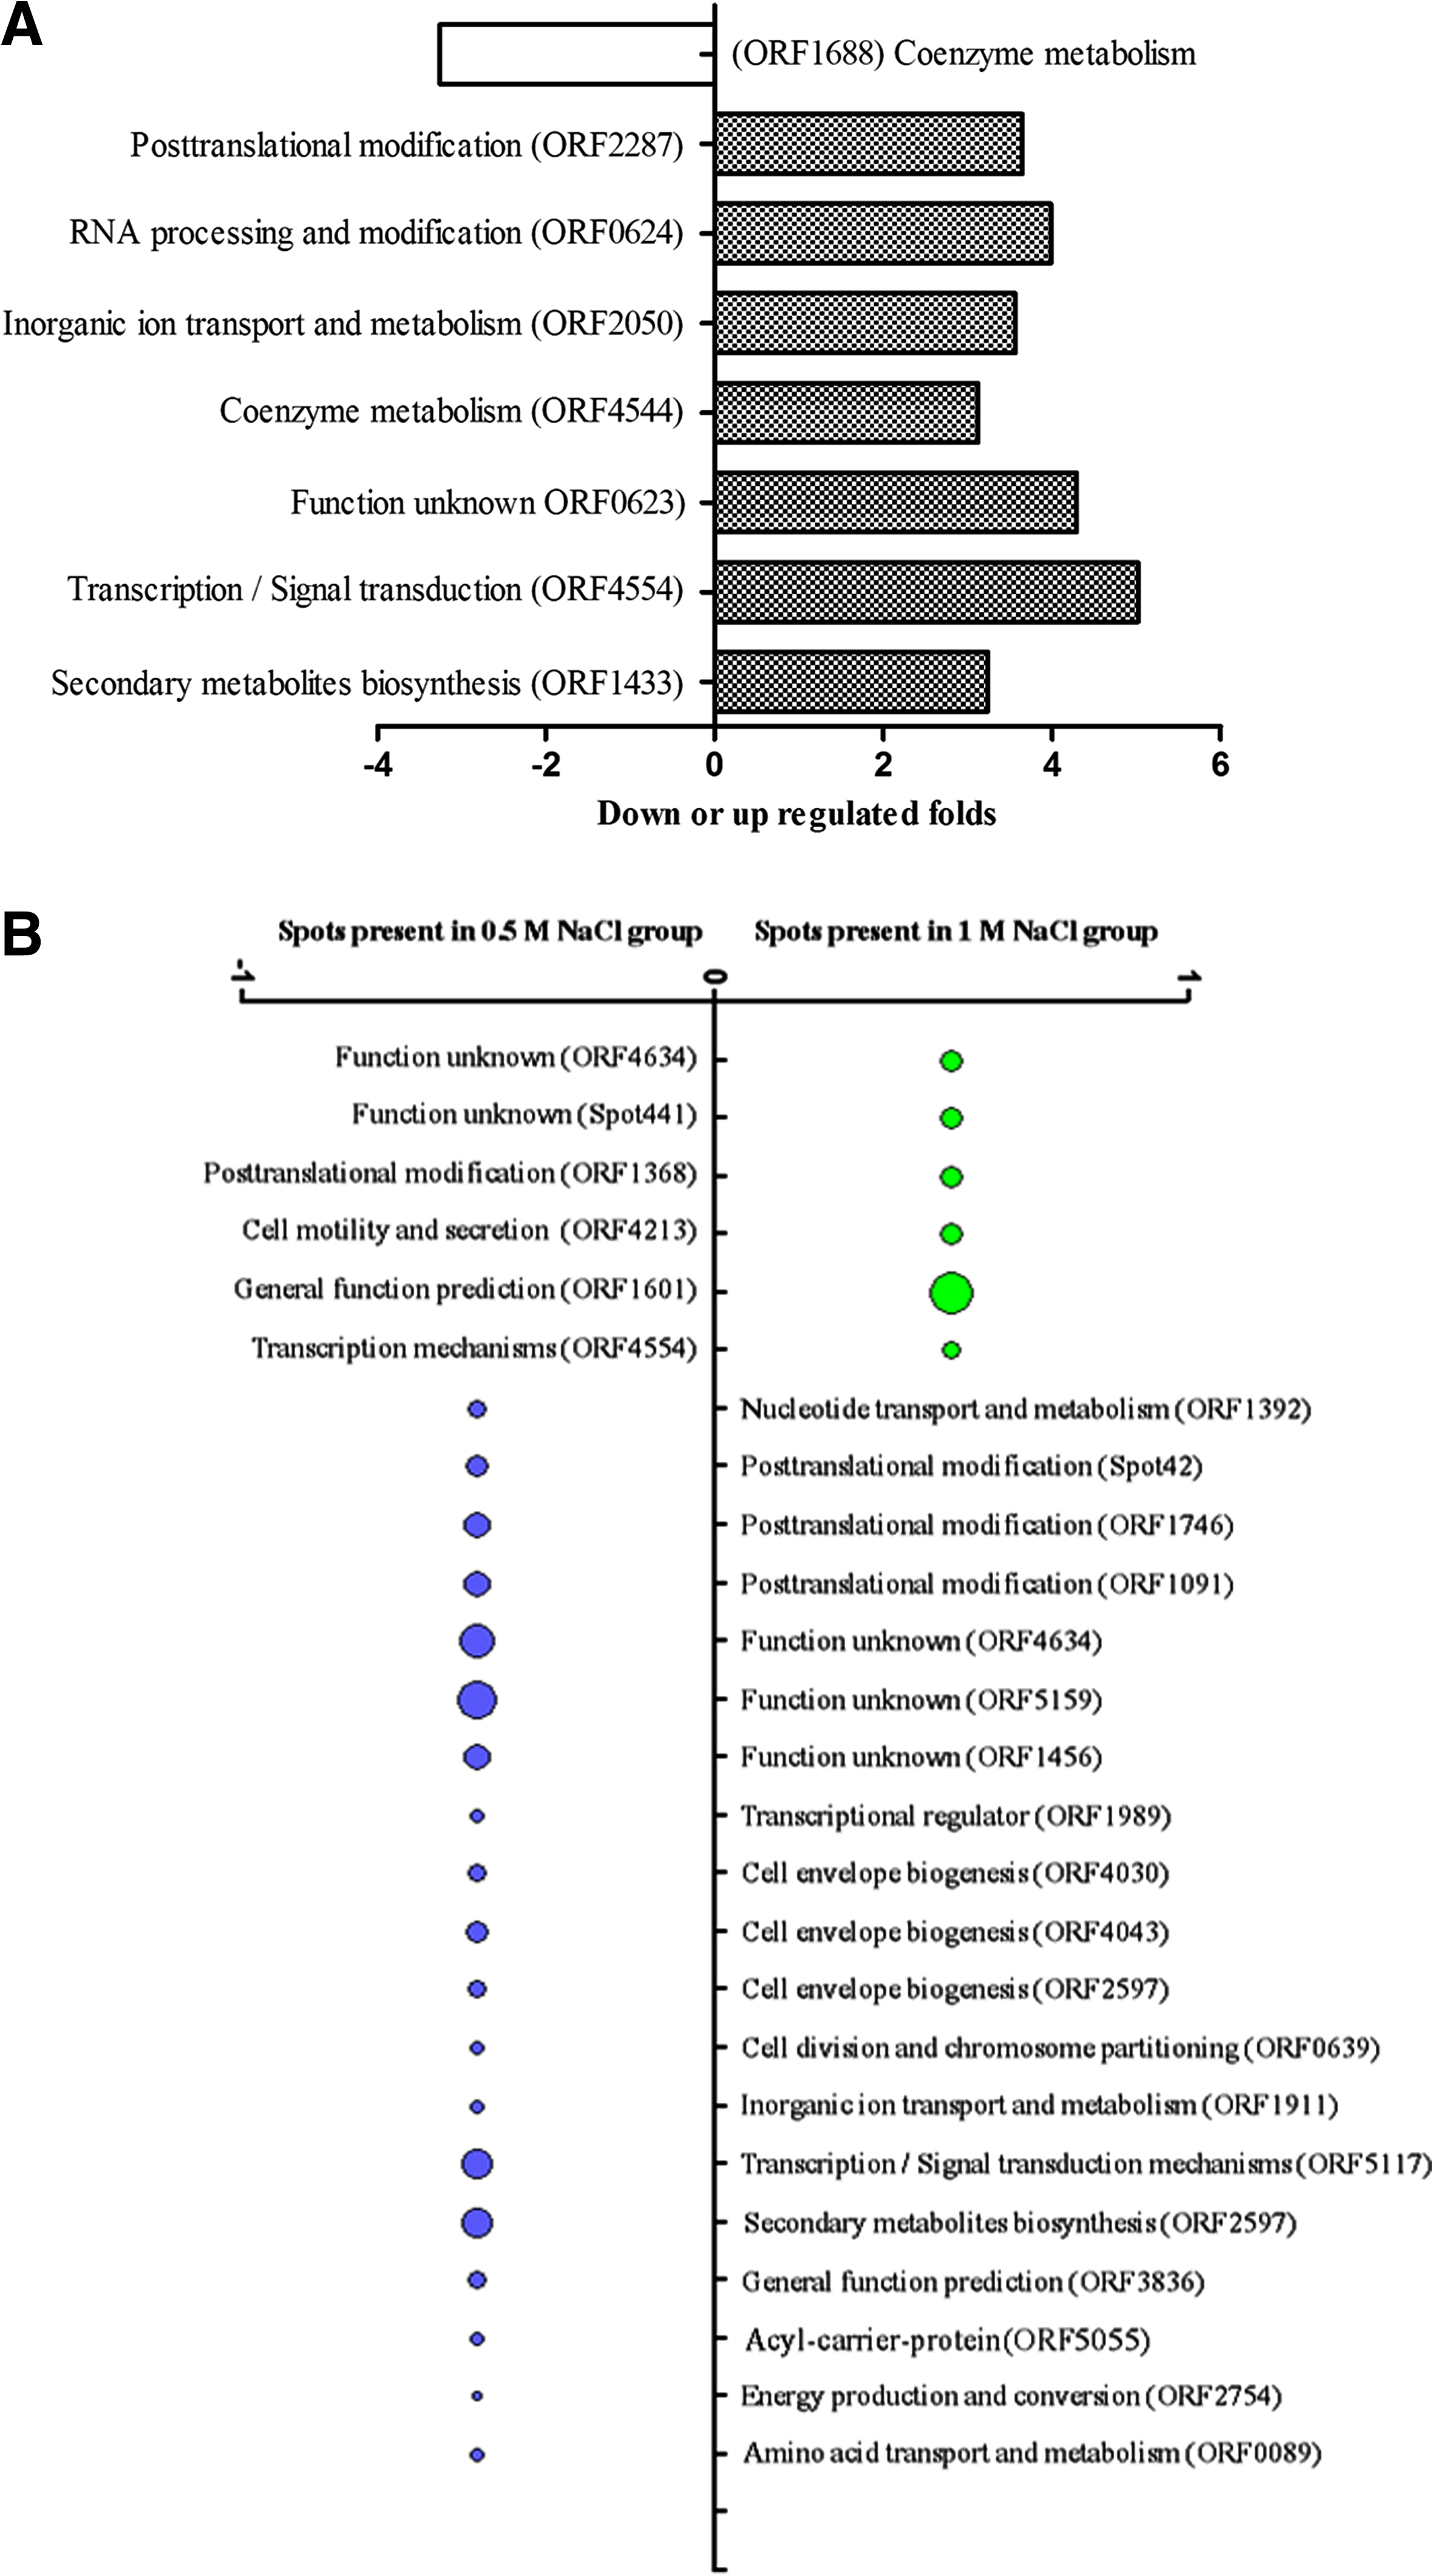 http://static-content.springer.com/image/art%3A10.1186%2F1477-5956-11-6/MediaObjects/12953_2012_Article_415_Fig3_HTML.jpg